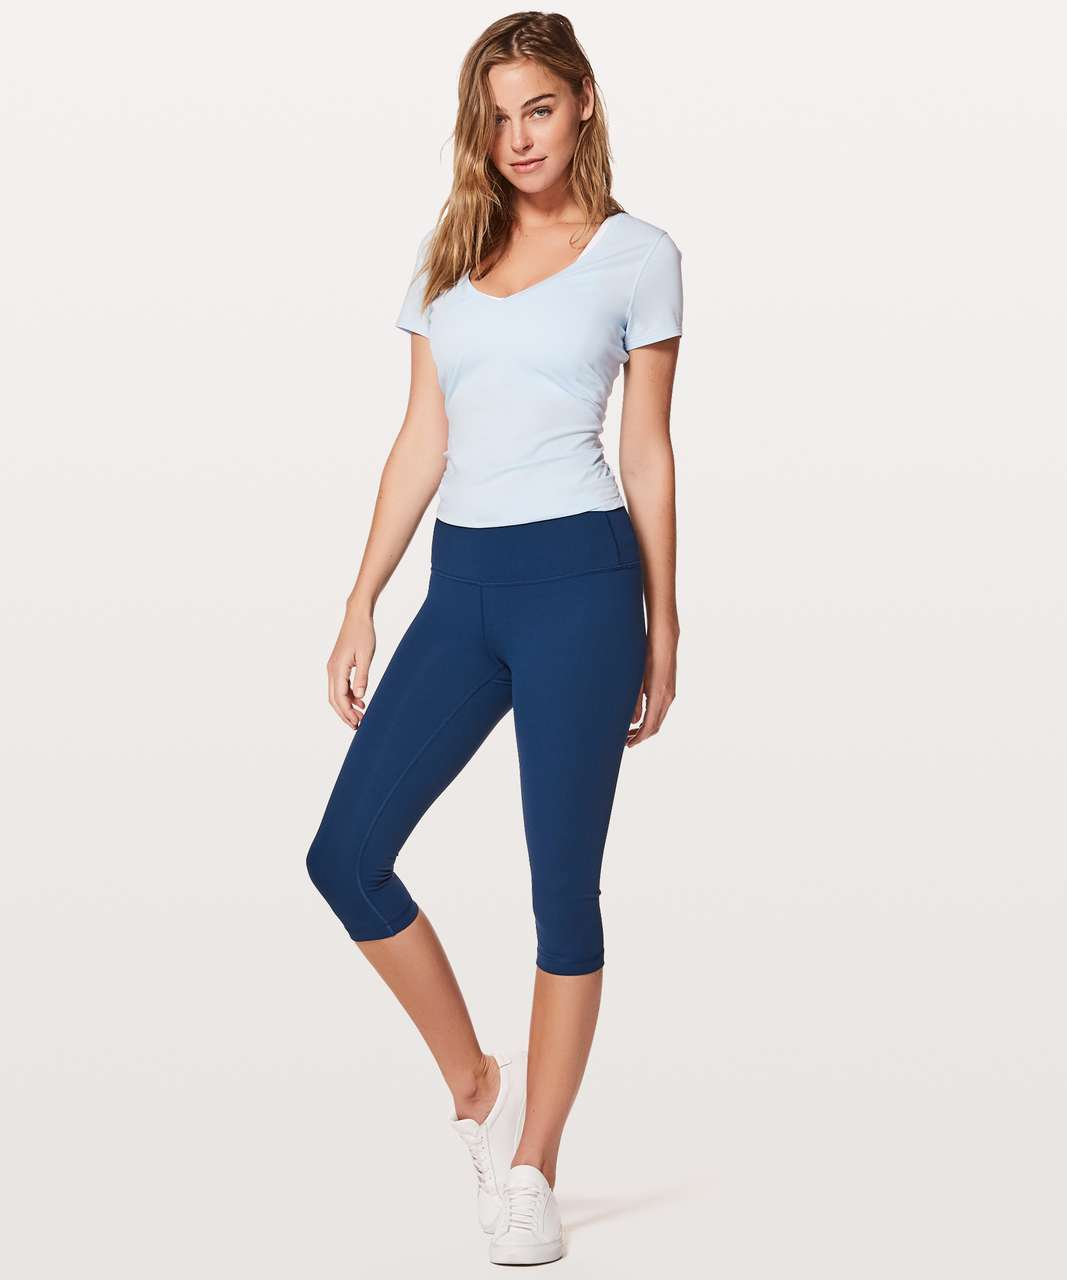 "Lululemon Wunder Under Hi-Rise 1/2 Tight *Full-On Luxtreme 17"" - Onyx Blue"